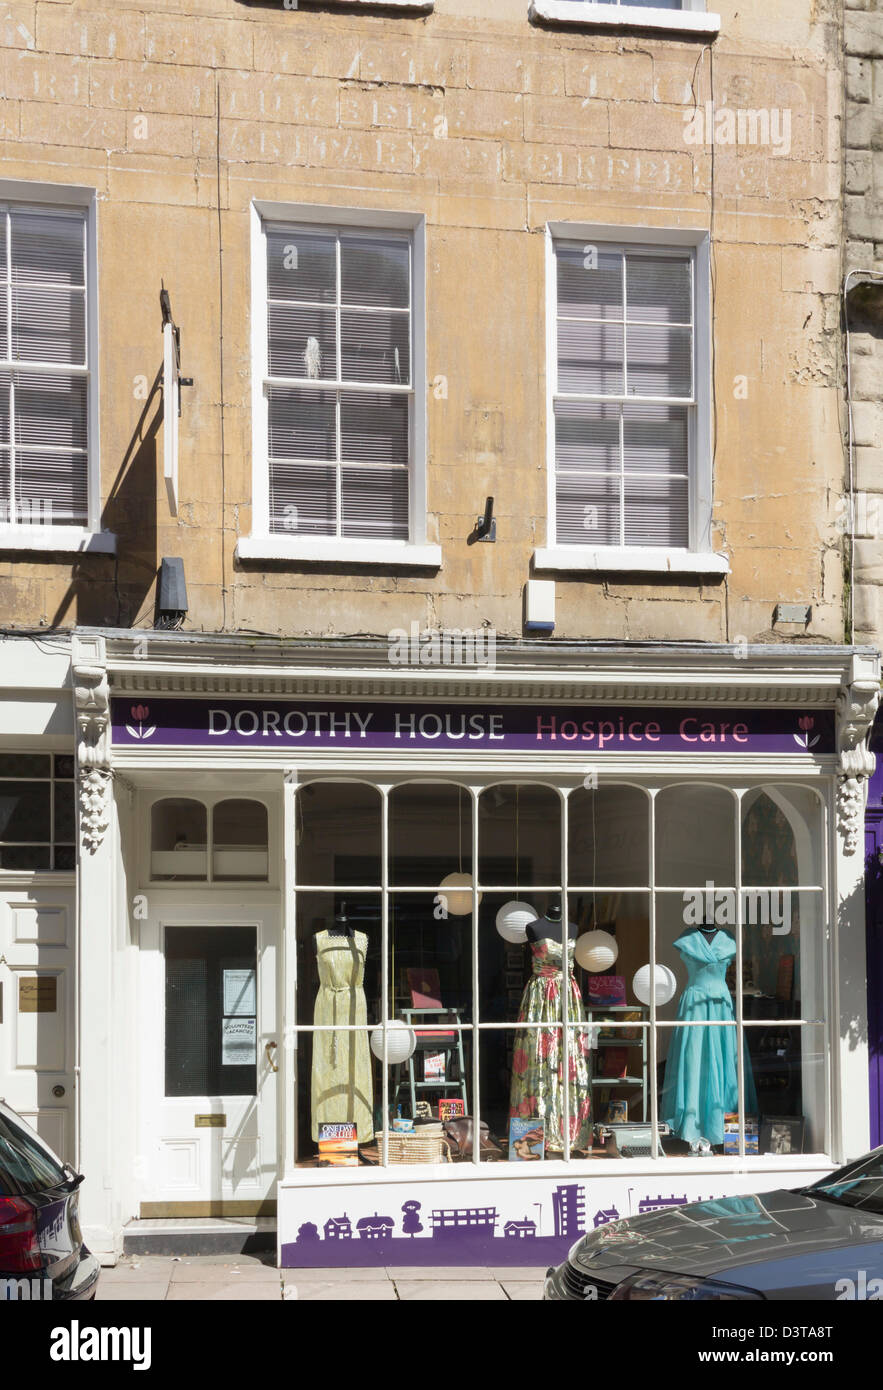 Dorothy house hospice charity shop on broad street bath for Bath house shop